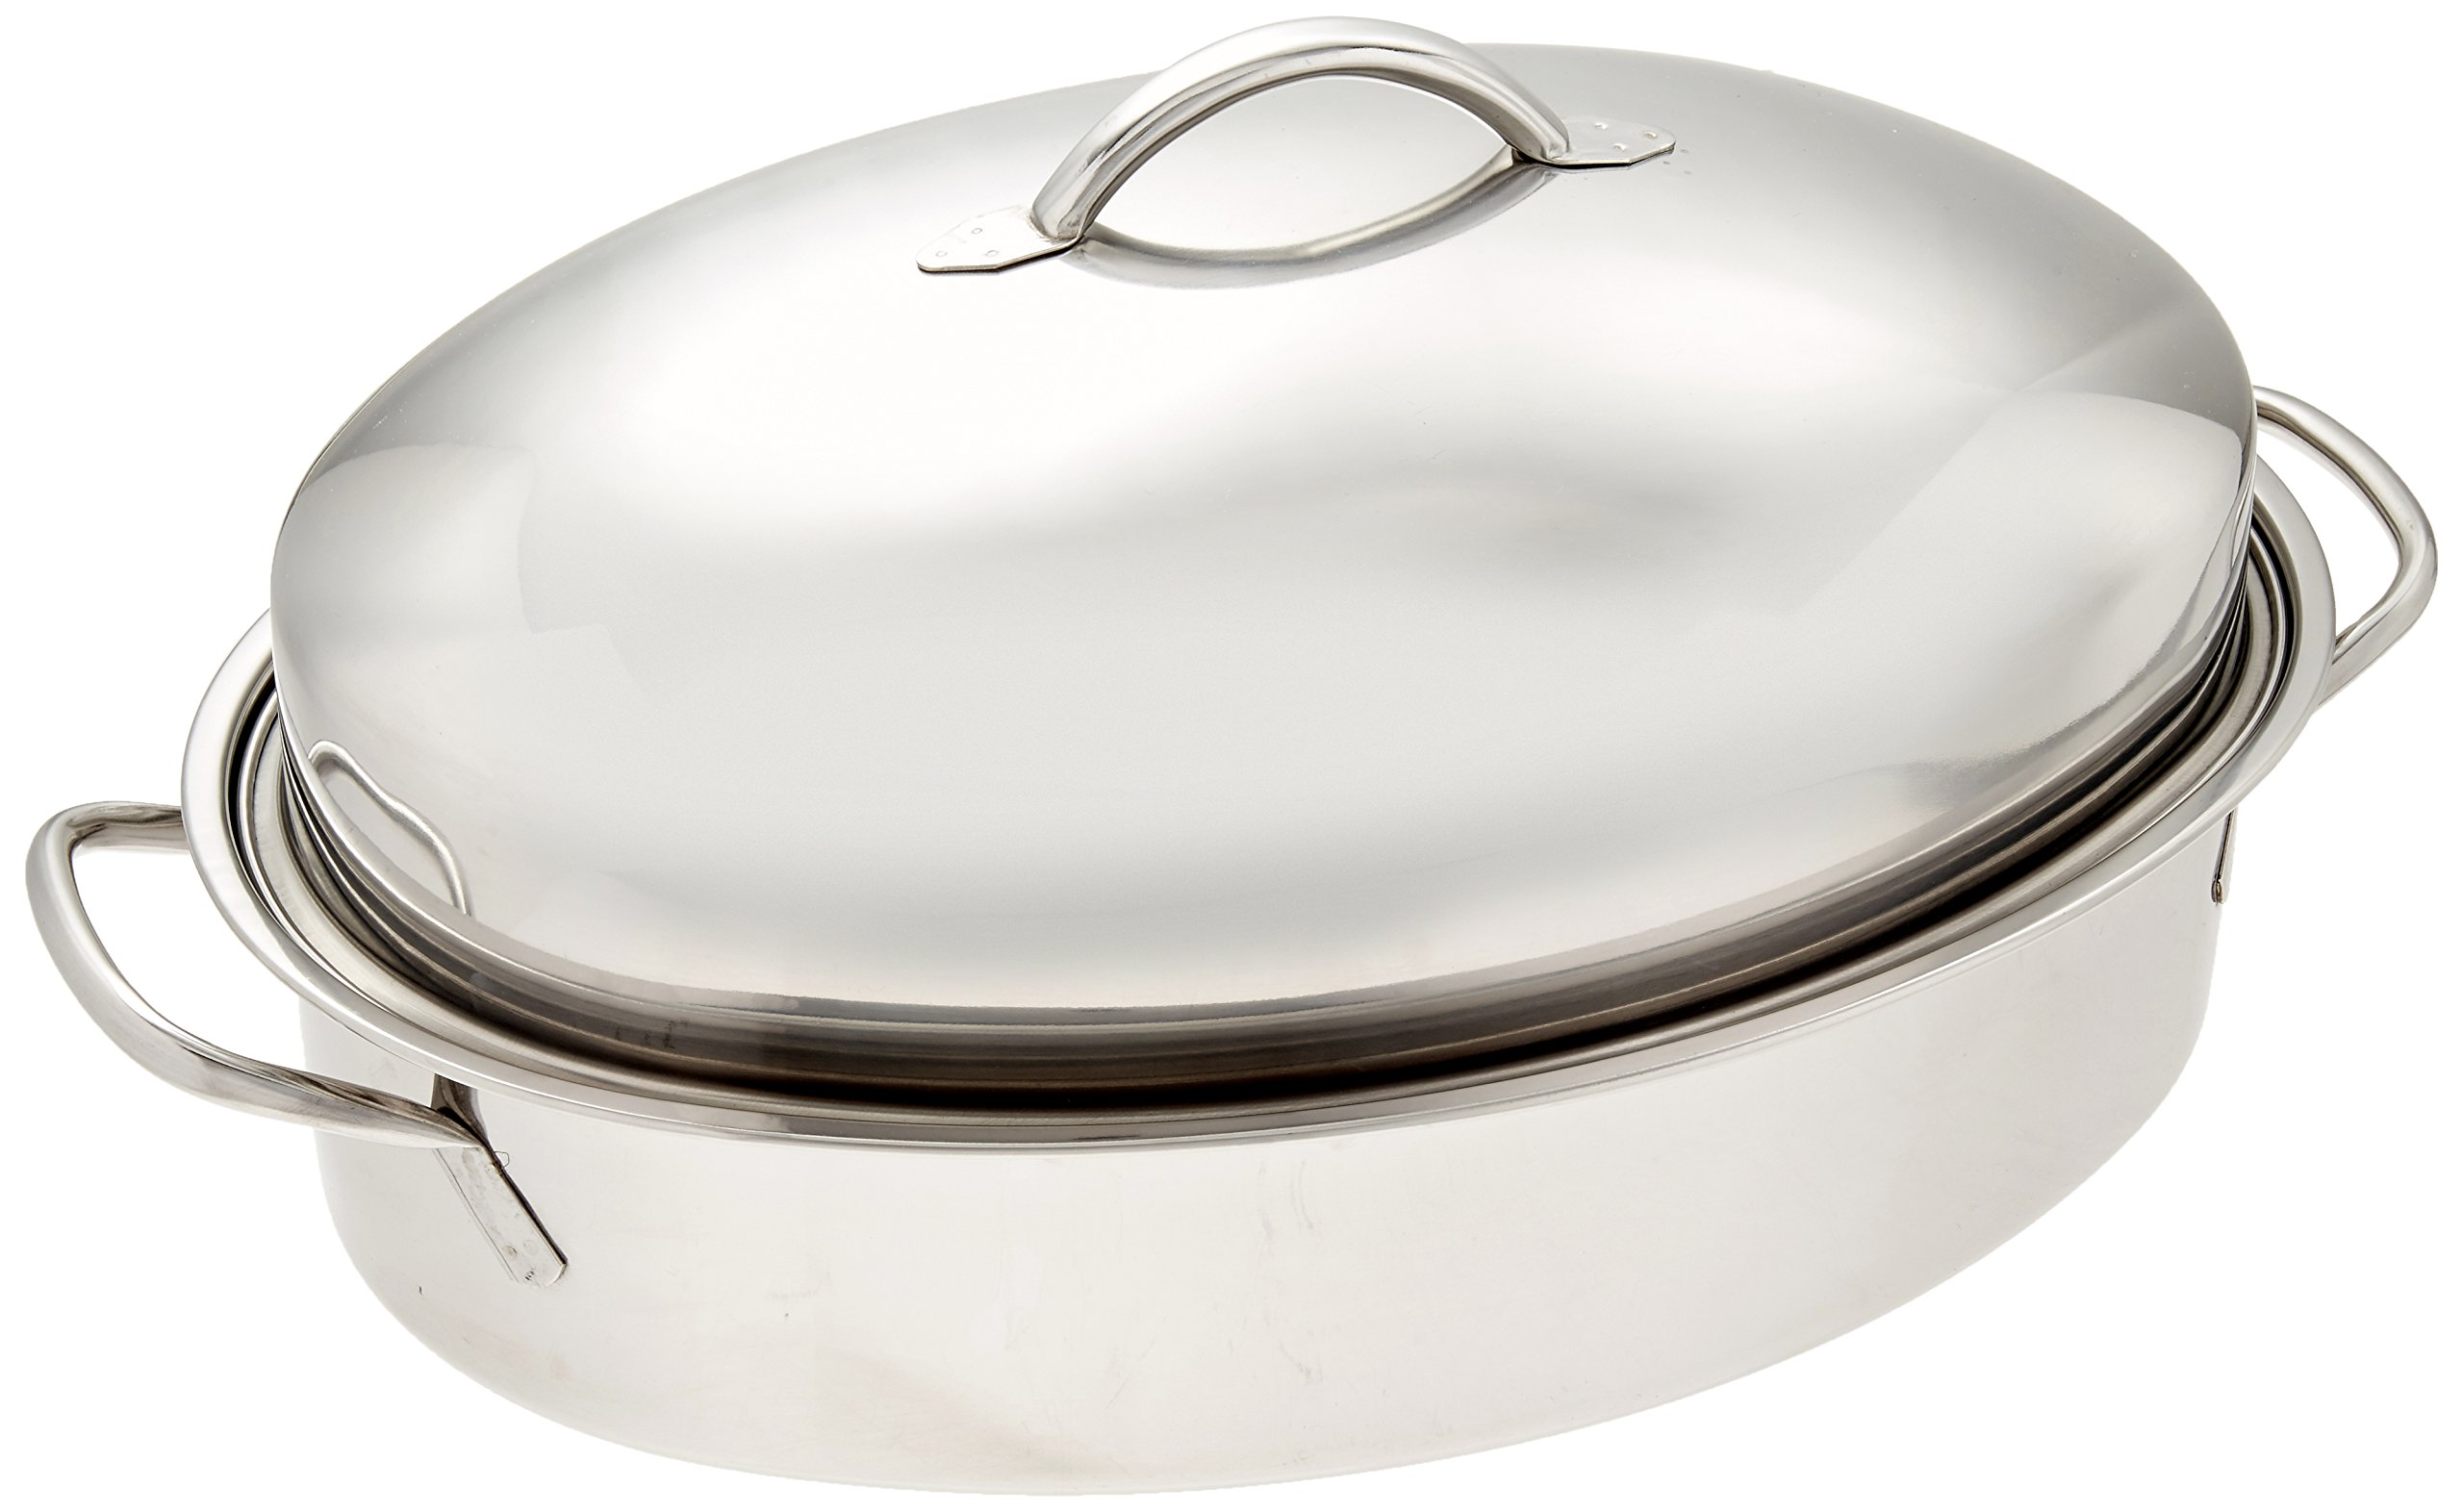 ExcelSteel Professional Stainless Steel Dome Roaster W/ Roasting Rack, 18.75'' x 12.25'' x 8''